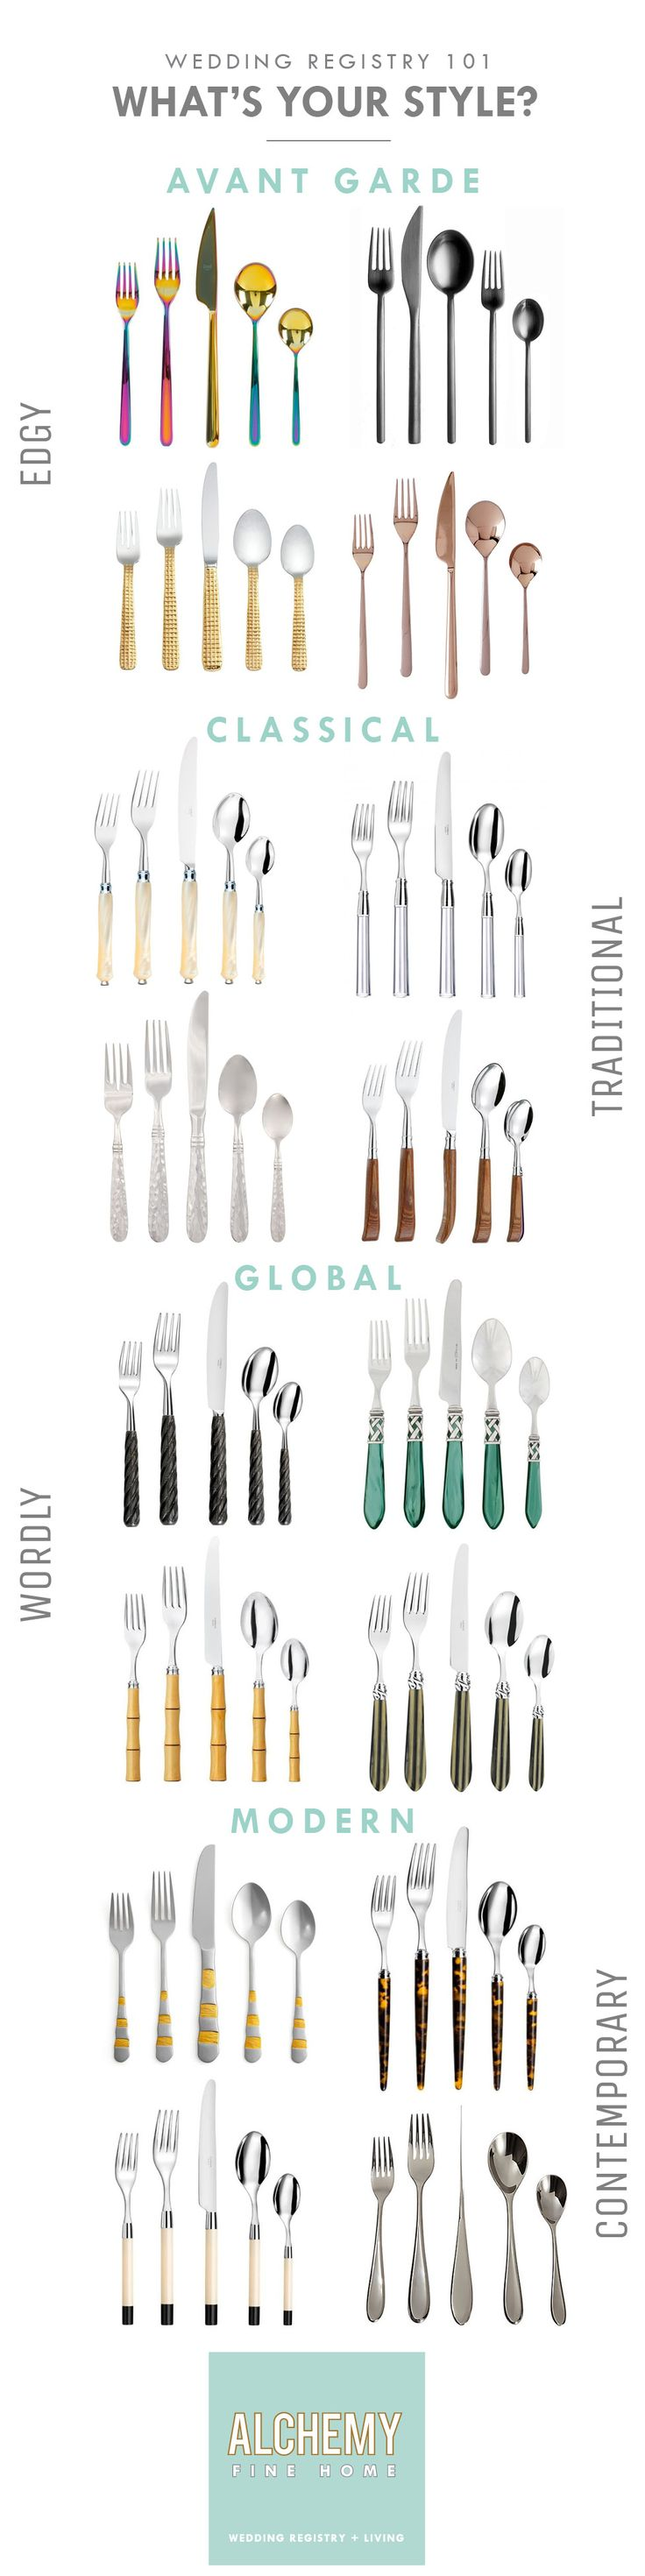 Not sure what Flatware to register for your wedding? Let us help! Take our Alchemy Fine Home Wedding Registry Style Quiz to learn more about your bridal style to help design your Wedding Registry or be inspired by some of our favorites seen here!   https://alchemyfinehome.com/pages/style-quiz